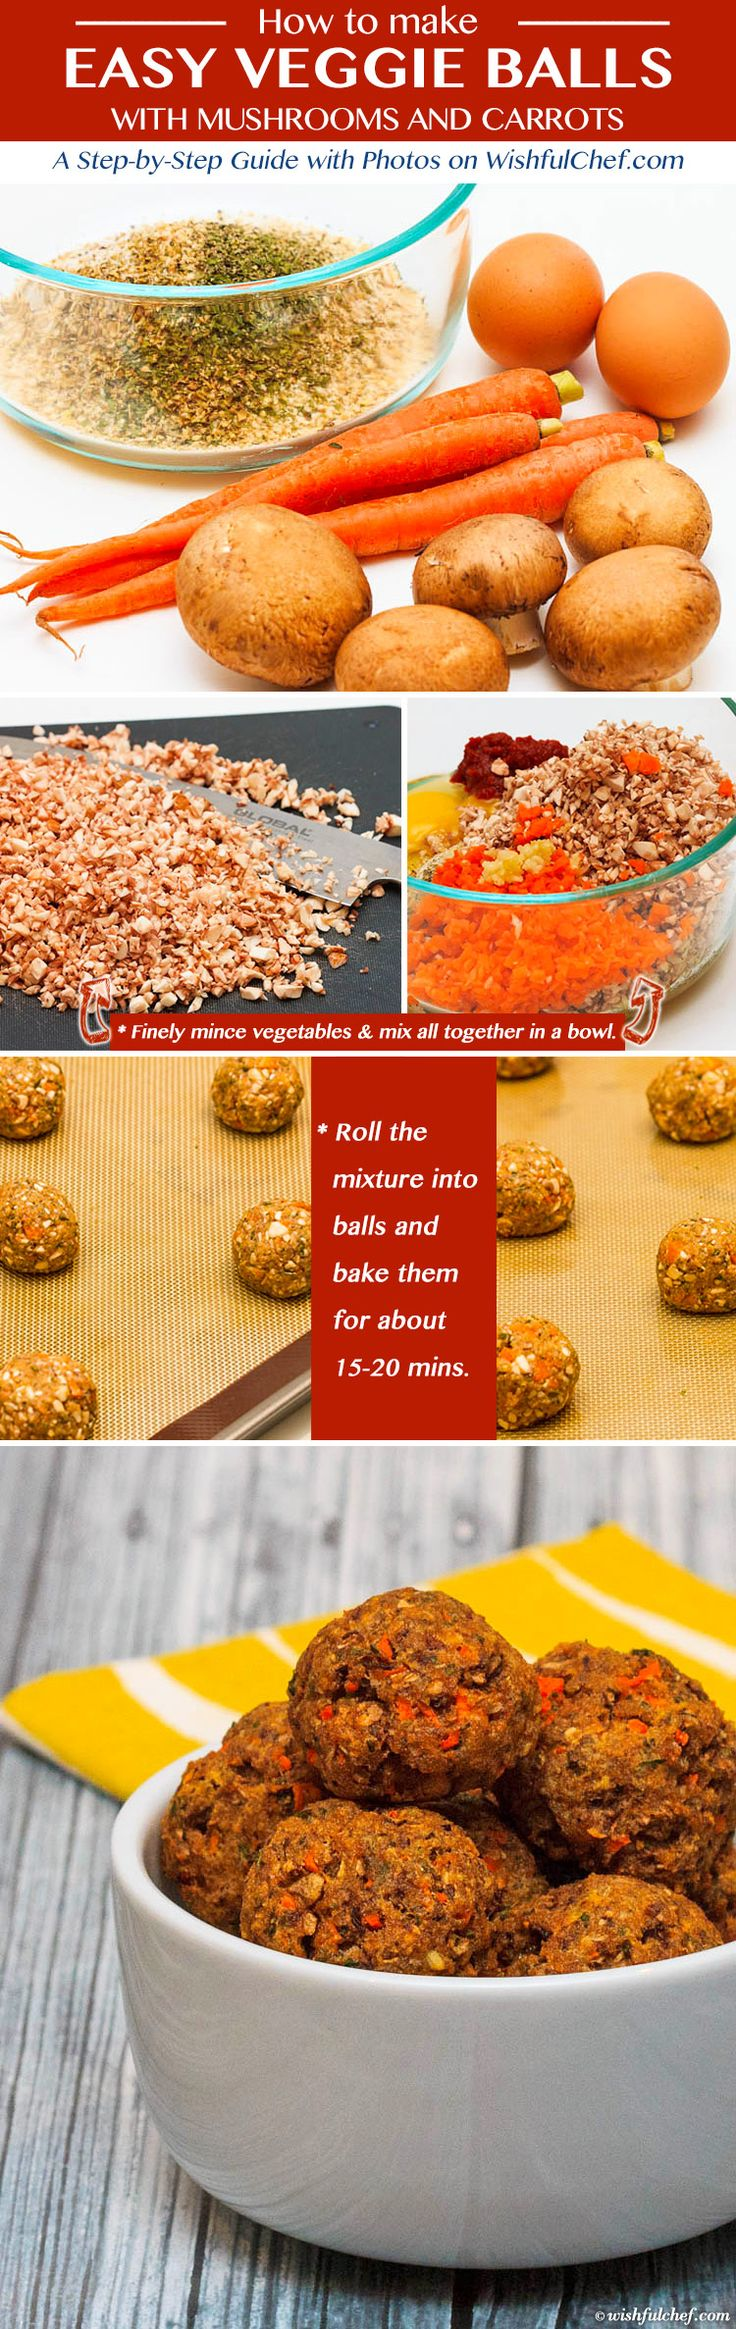 Easy Veggie Balls with Mushrooms and Carrots // wishfulchef.com #Healthy #Vegetarian